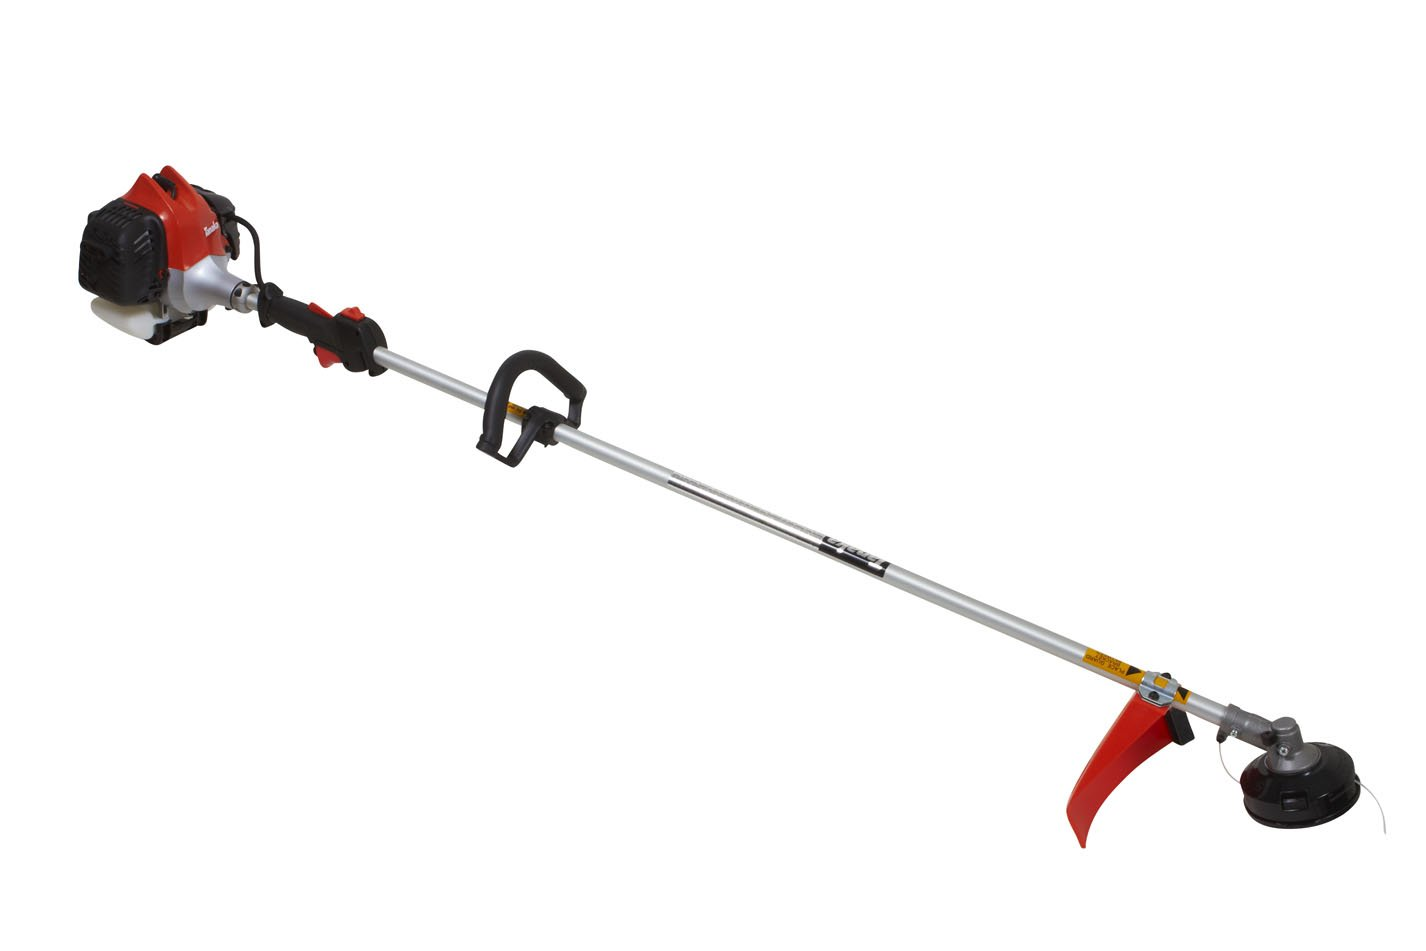 Tanaka TCG27EBSP 2-Cycle Gas String Commercial Grade Trimmer, 26.9cc